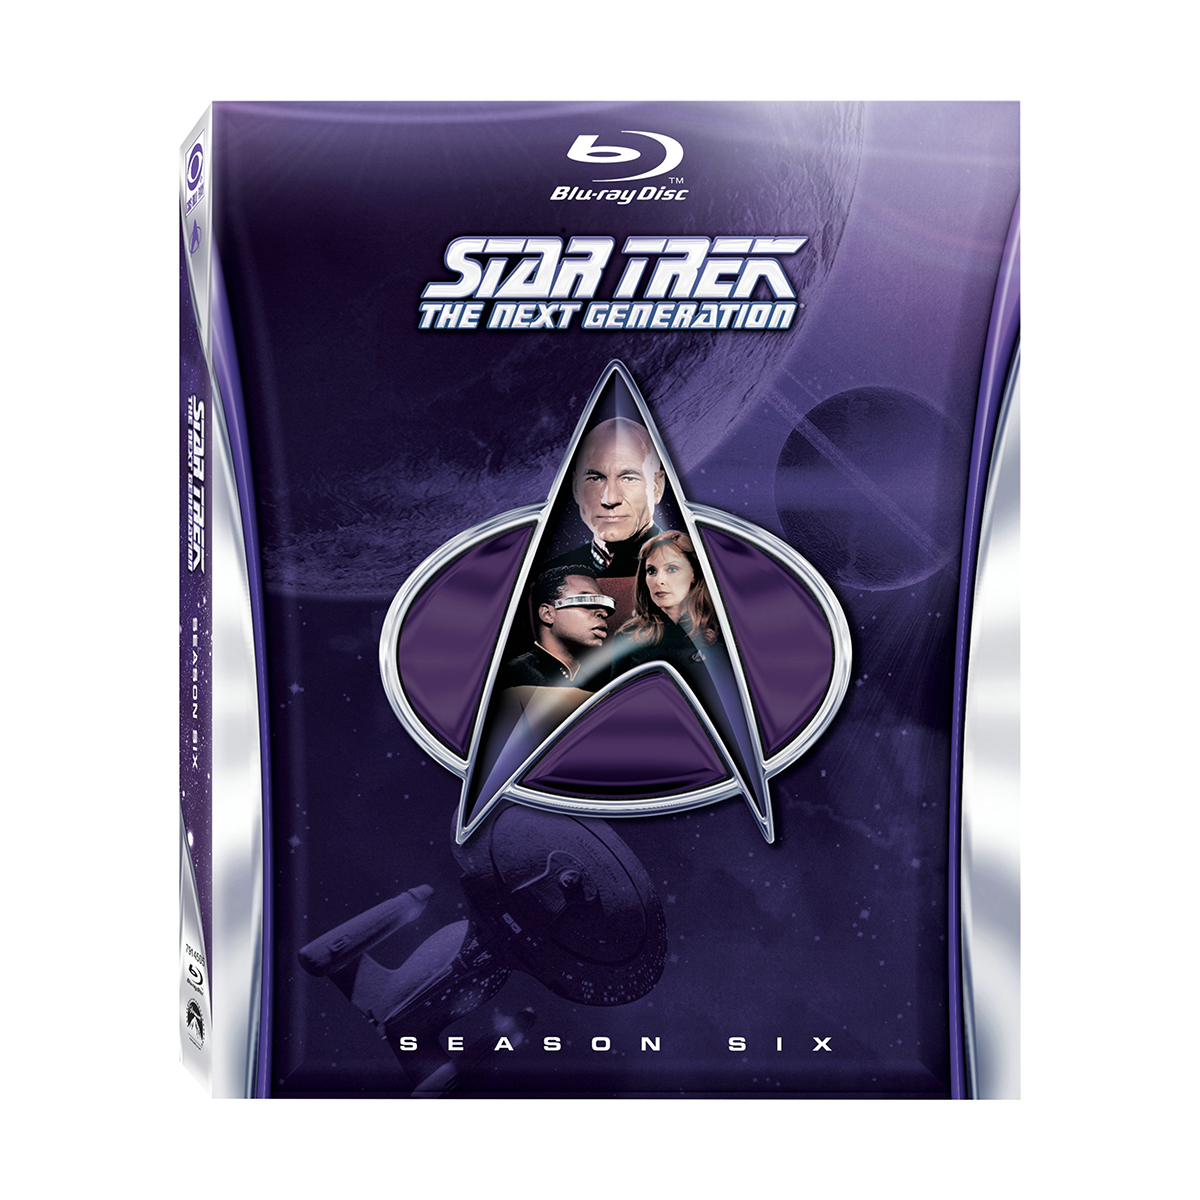 Star Trek: The Next Generation - Season 6 Blu-ray